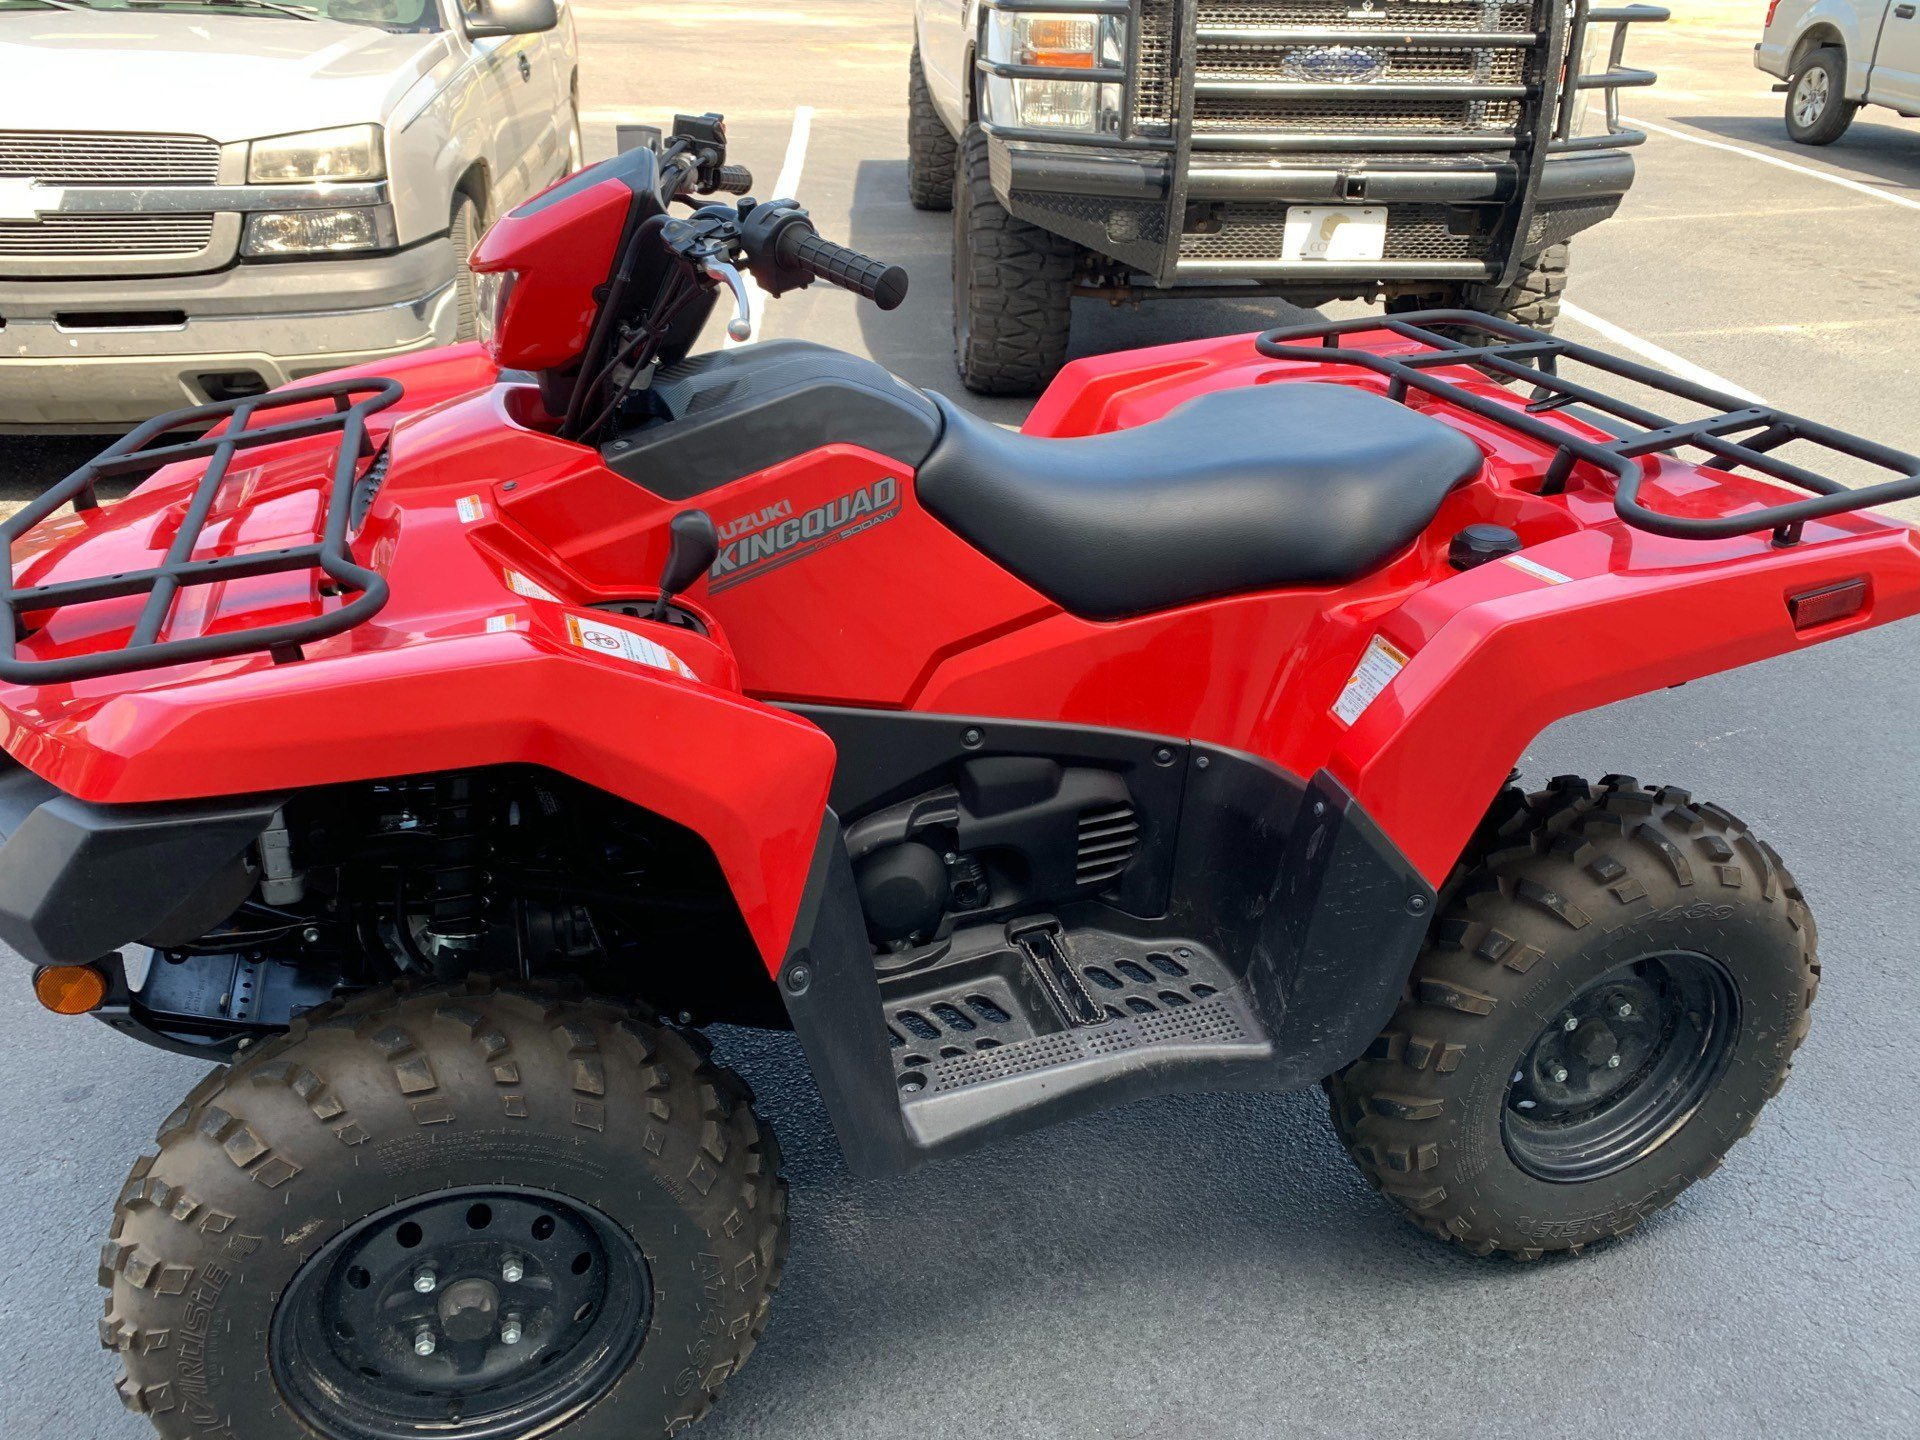 2019 Suzuki KingQuad 500AXi in Statesboro, Georgia - Photo 3